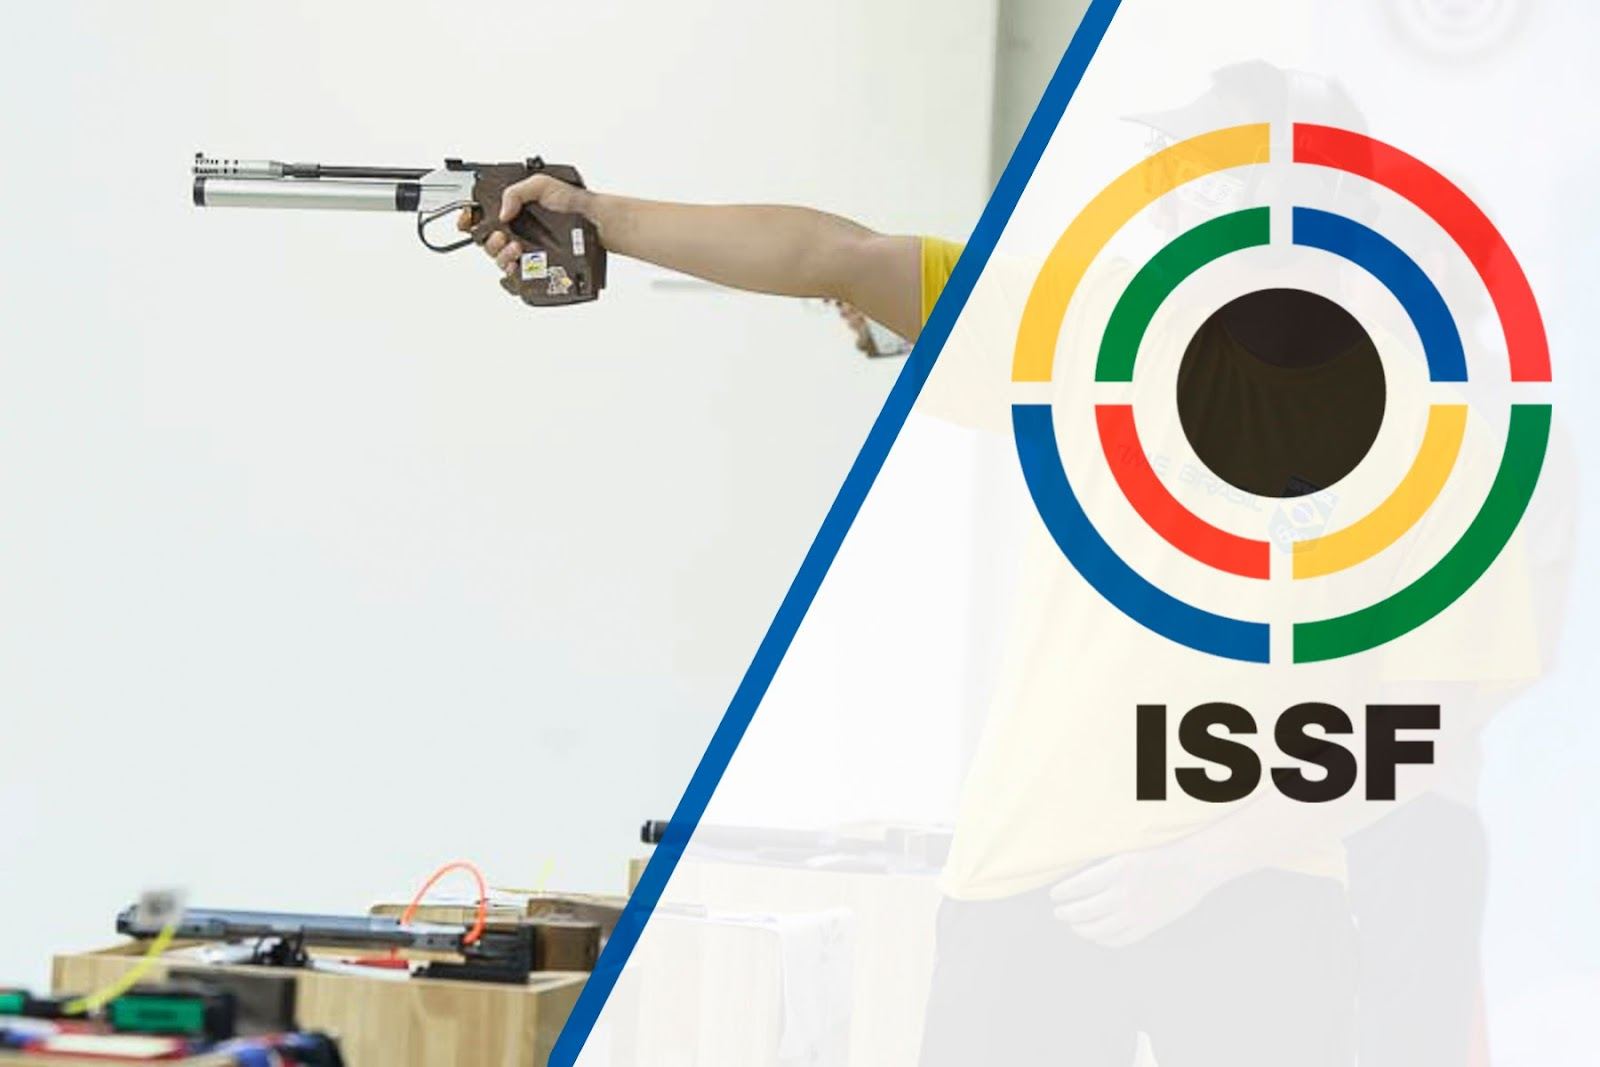 The ISSF Logo